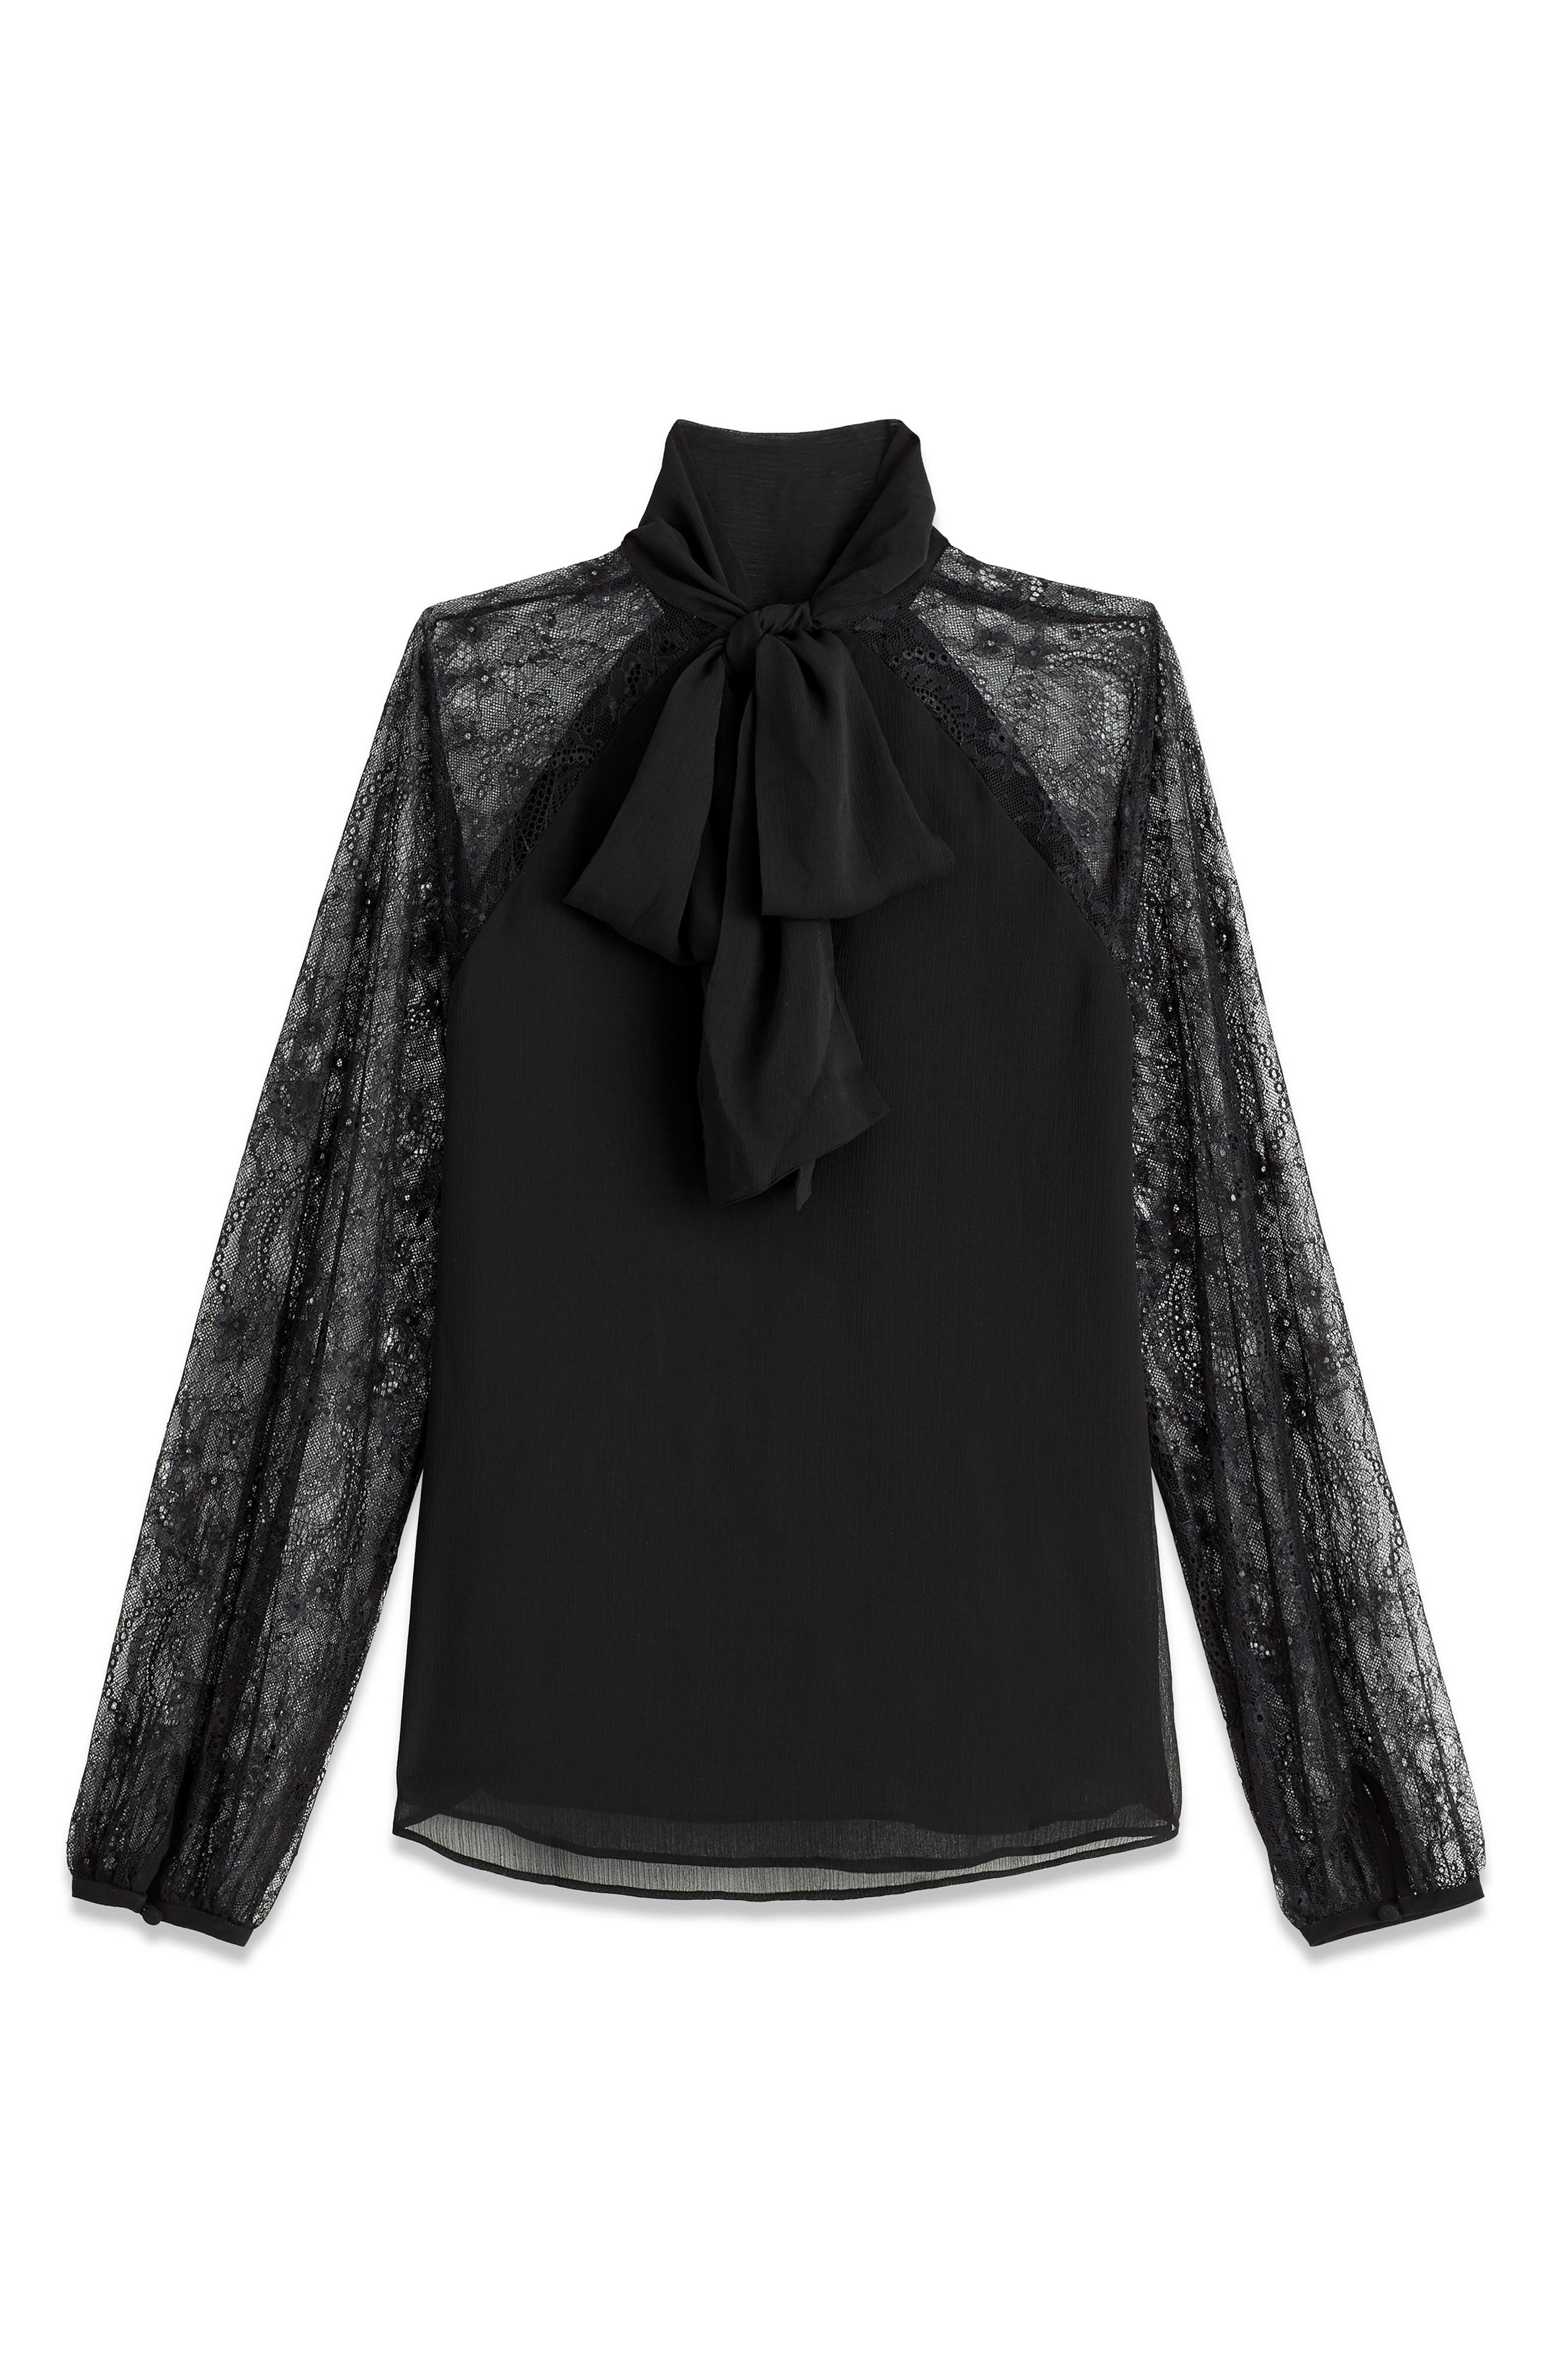 Lace Sleeve Bow Top,                             Alternate thumbnail 3, color,                             001